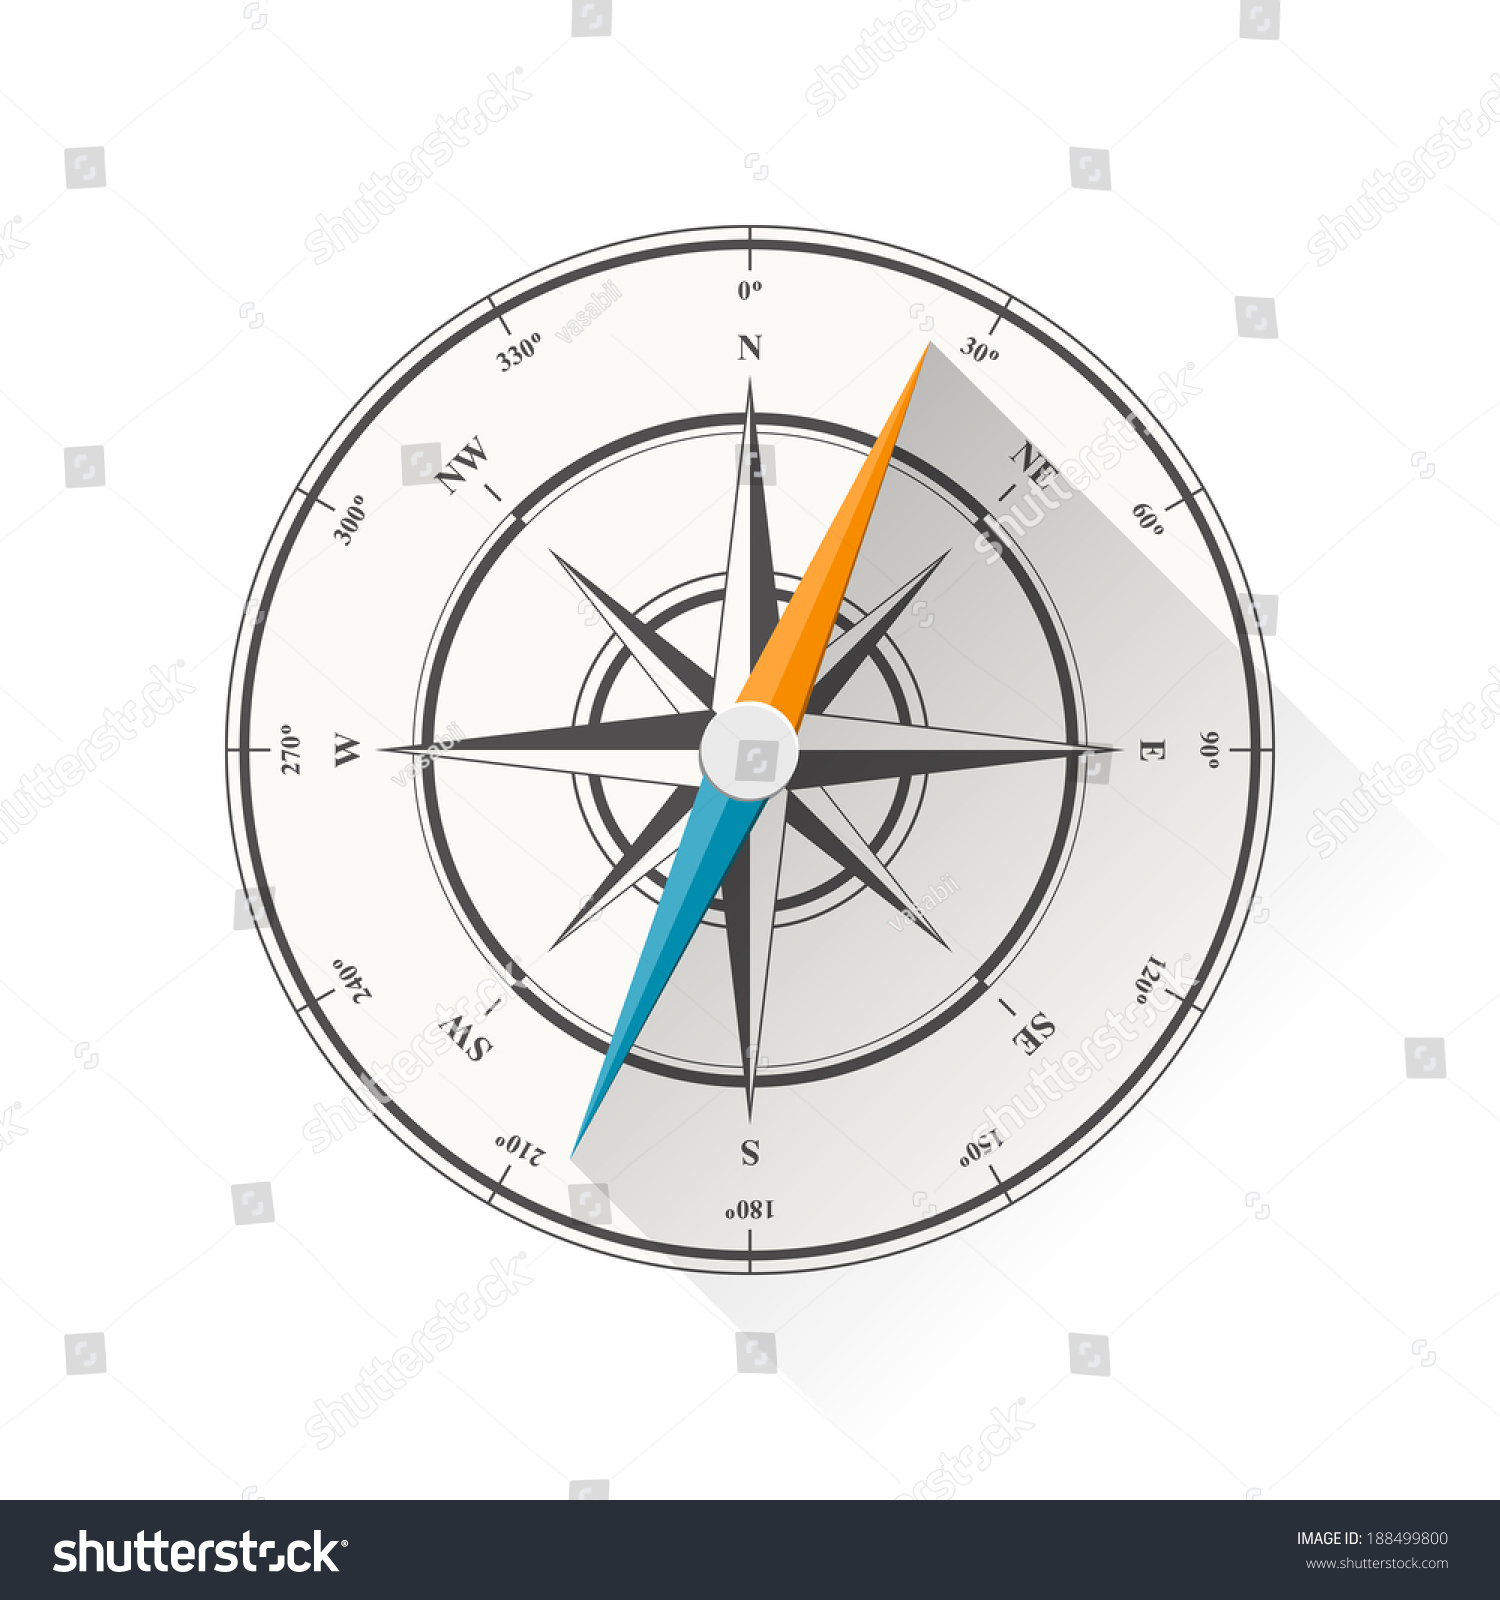 Illustration Of Compass Diagram Isolated On White